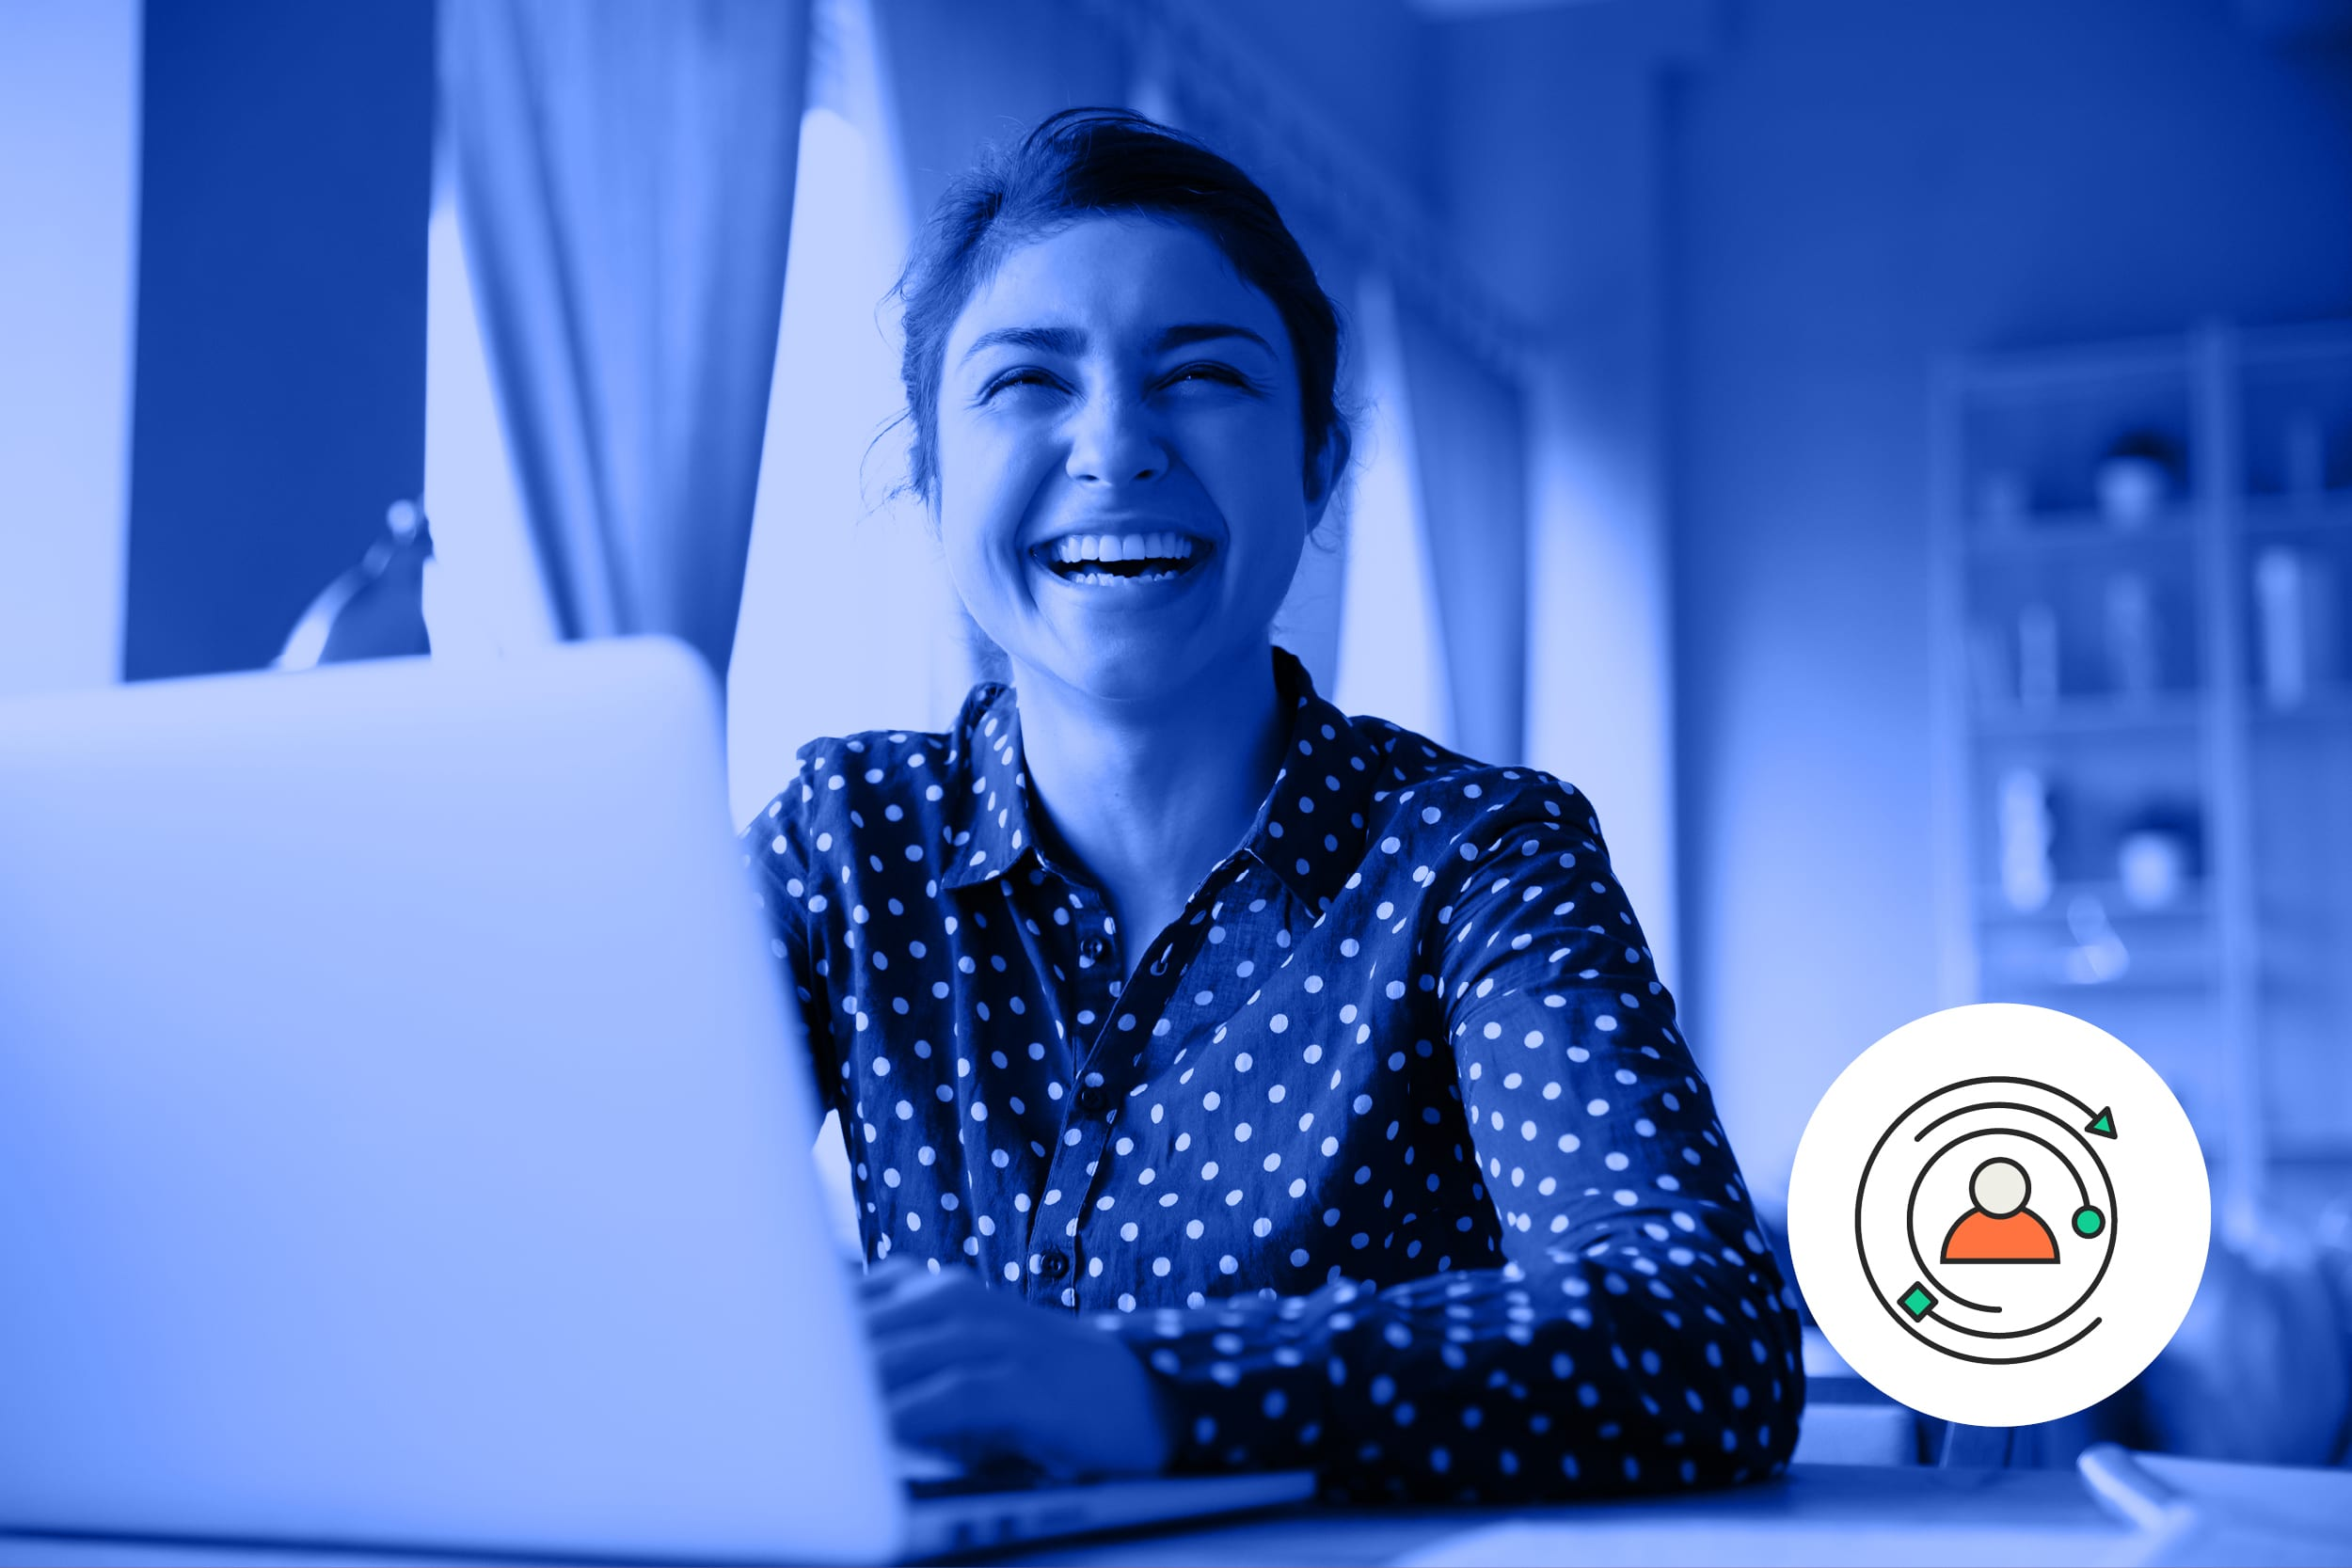 Provide a positive candidate experience to all candidates. A female candidate smiles as she sits in front of her laptop.